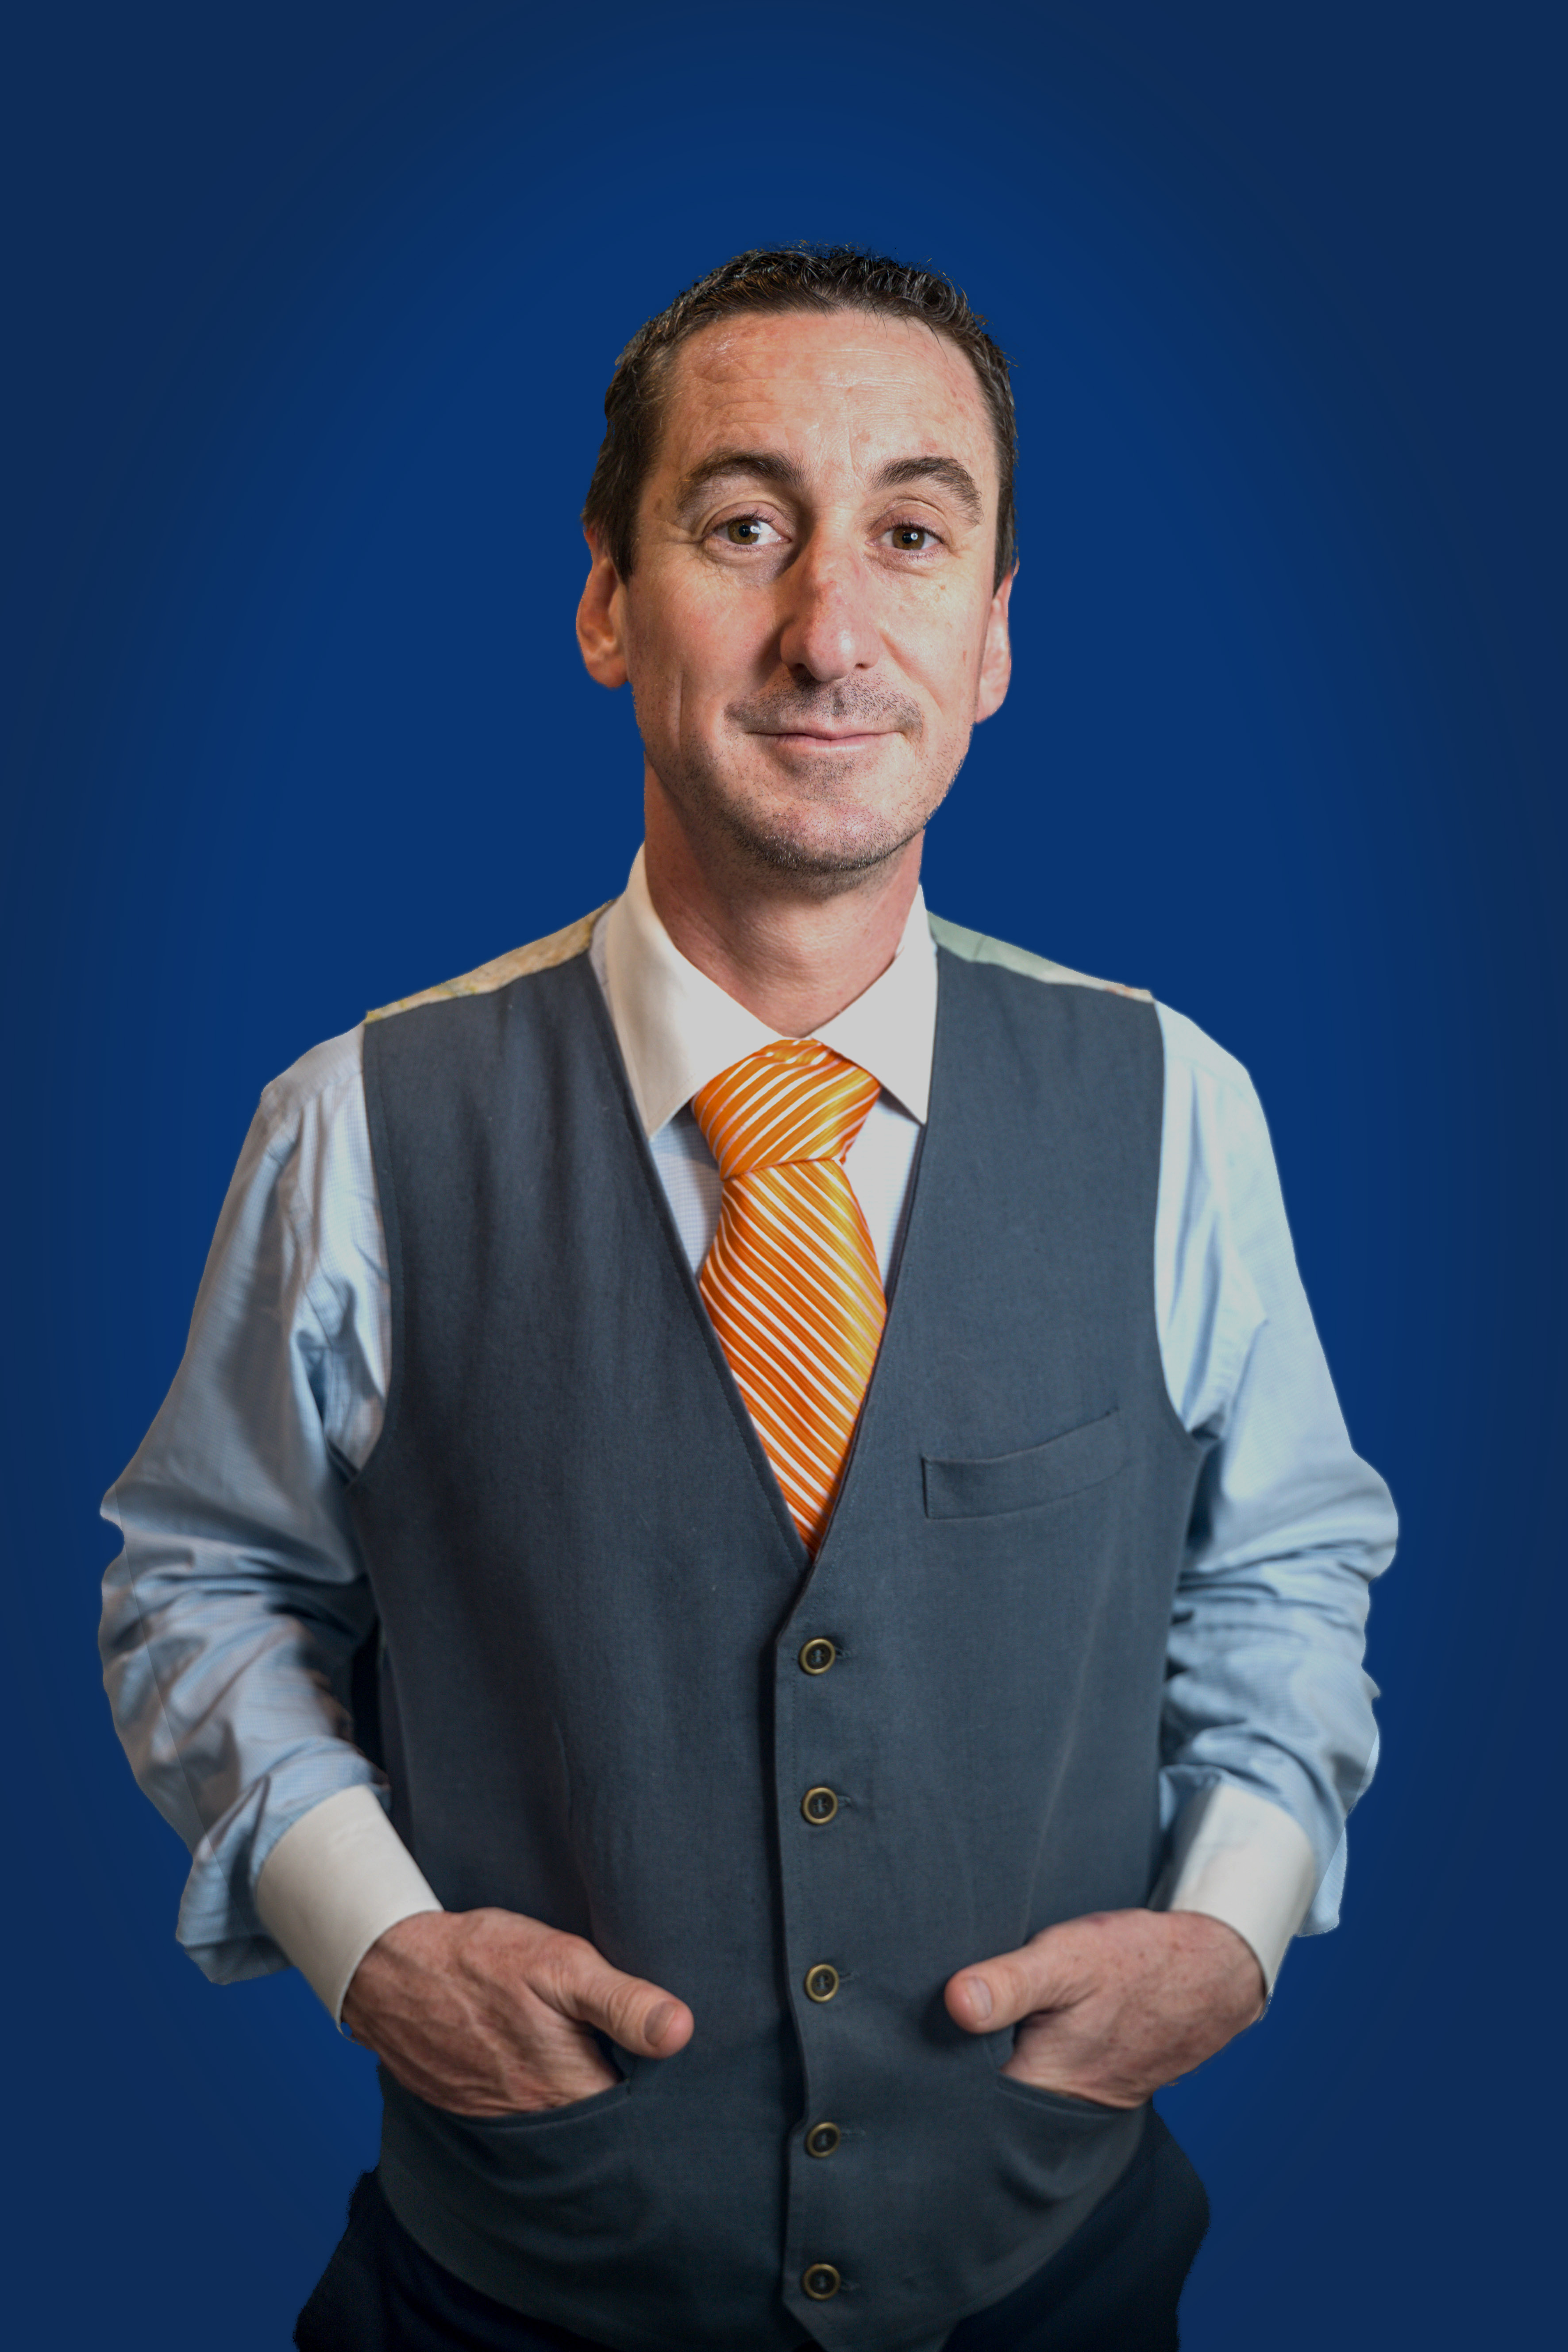 Michael Bowen is the #1 Choice in Property & Real Estate Investment Partnerships in South Africa